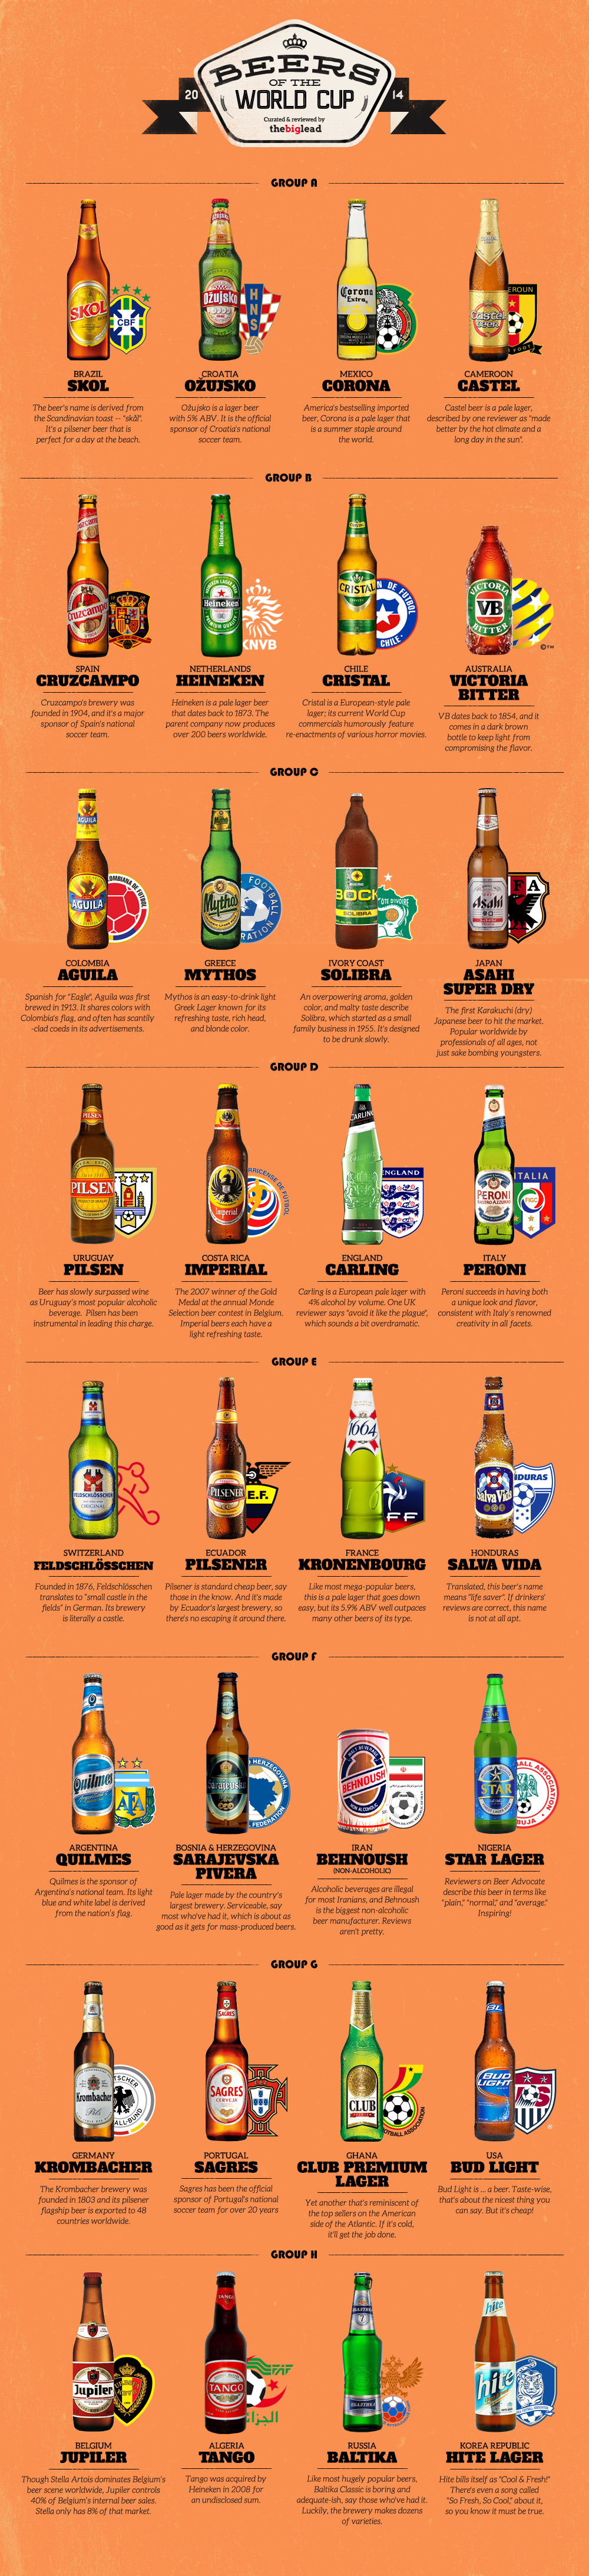 Beers of the Worldcup 2014